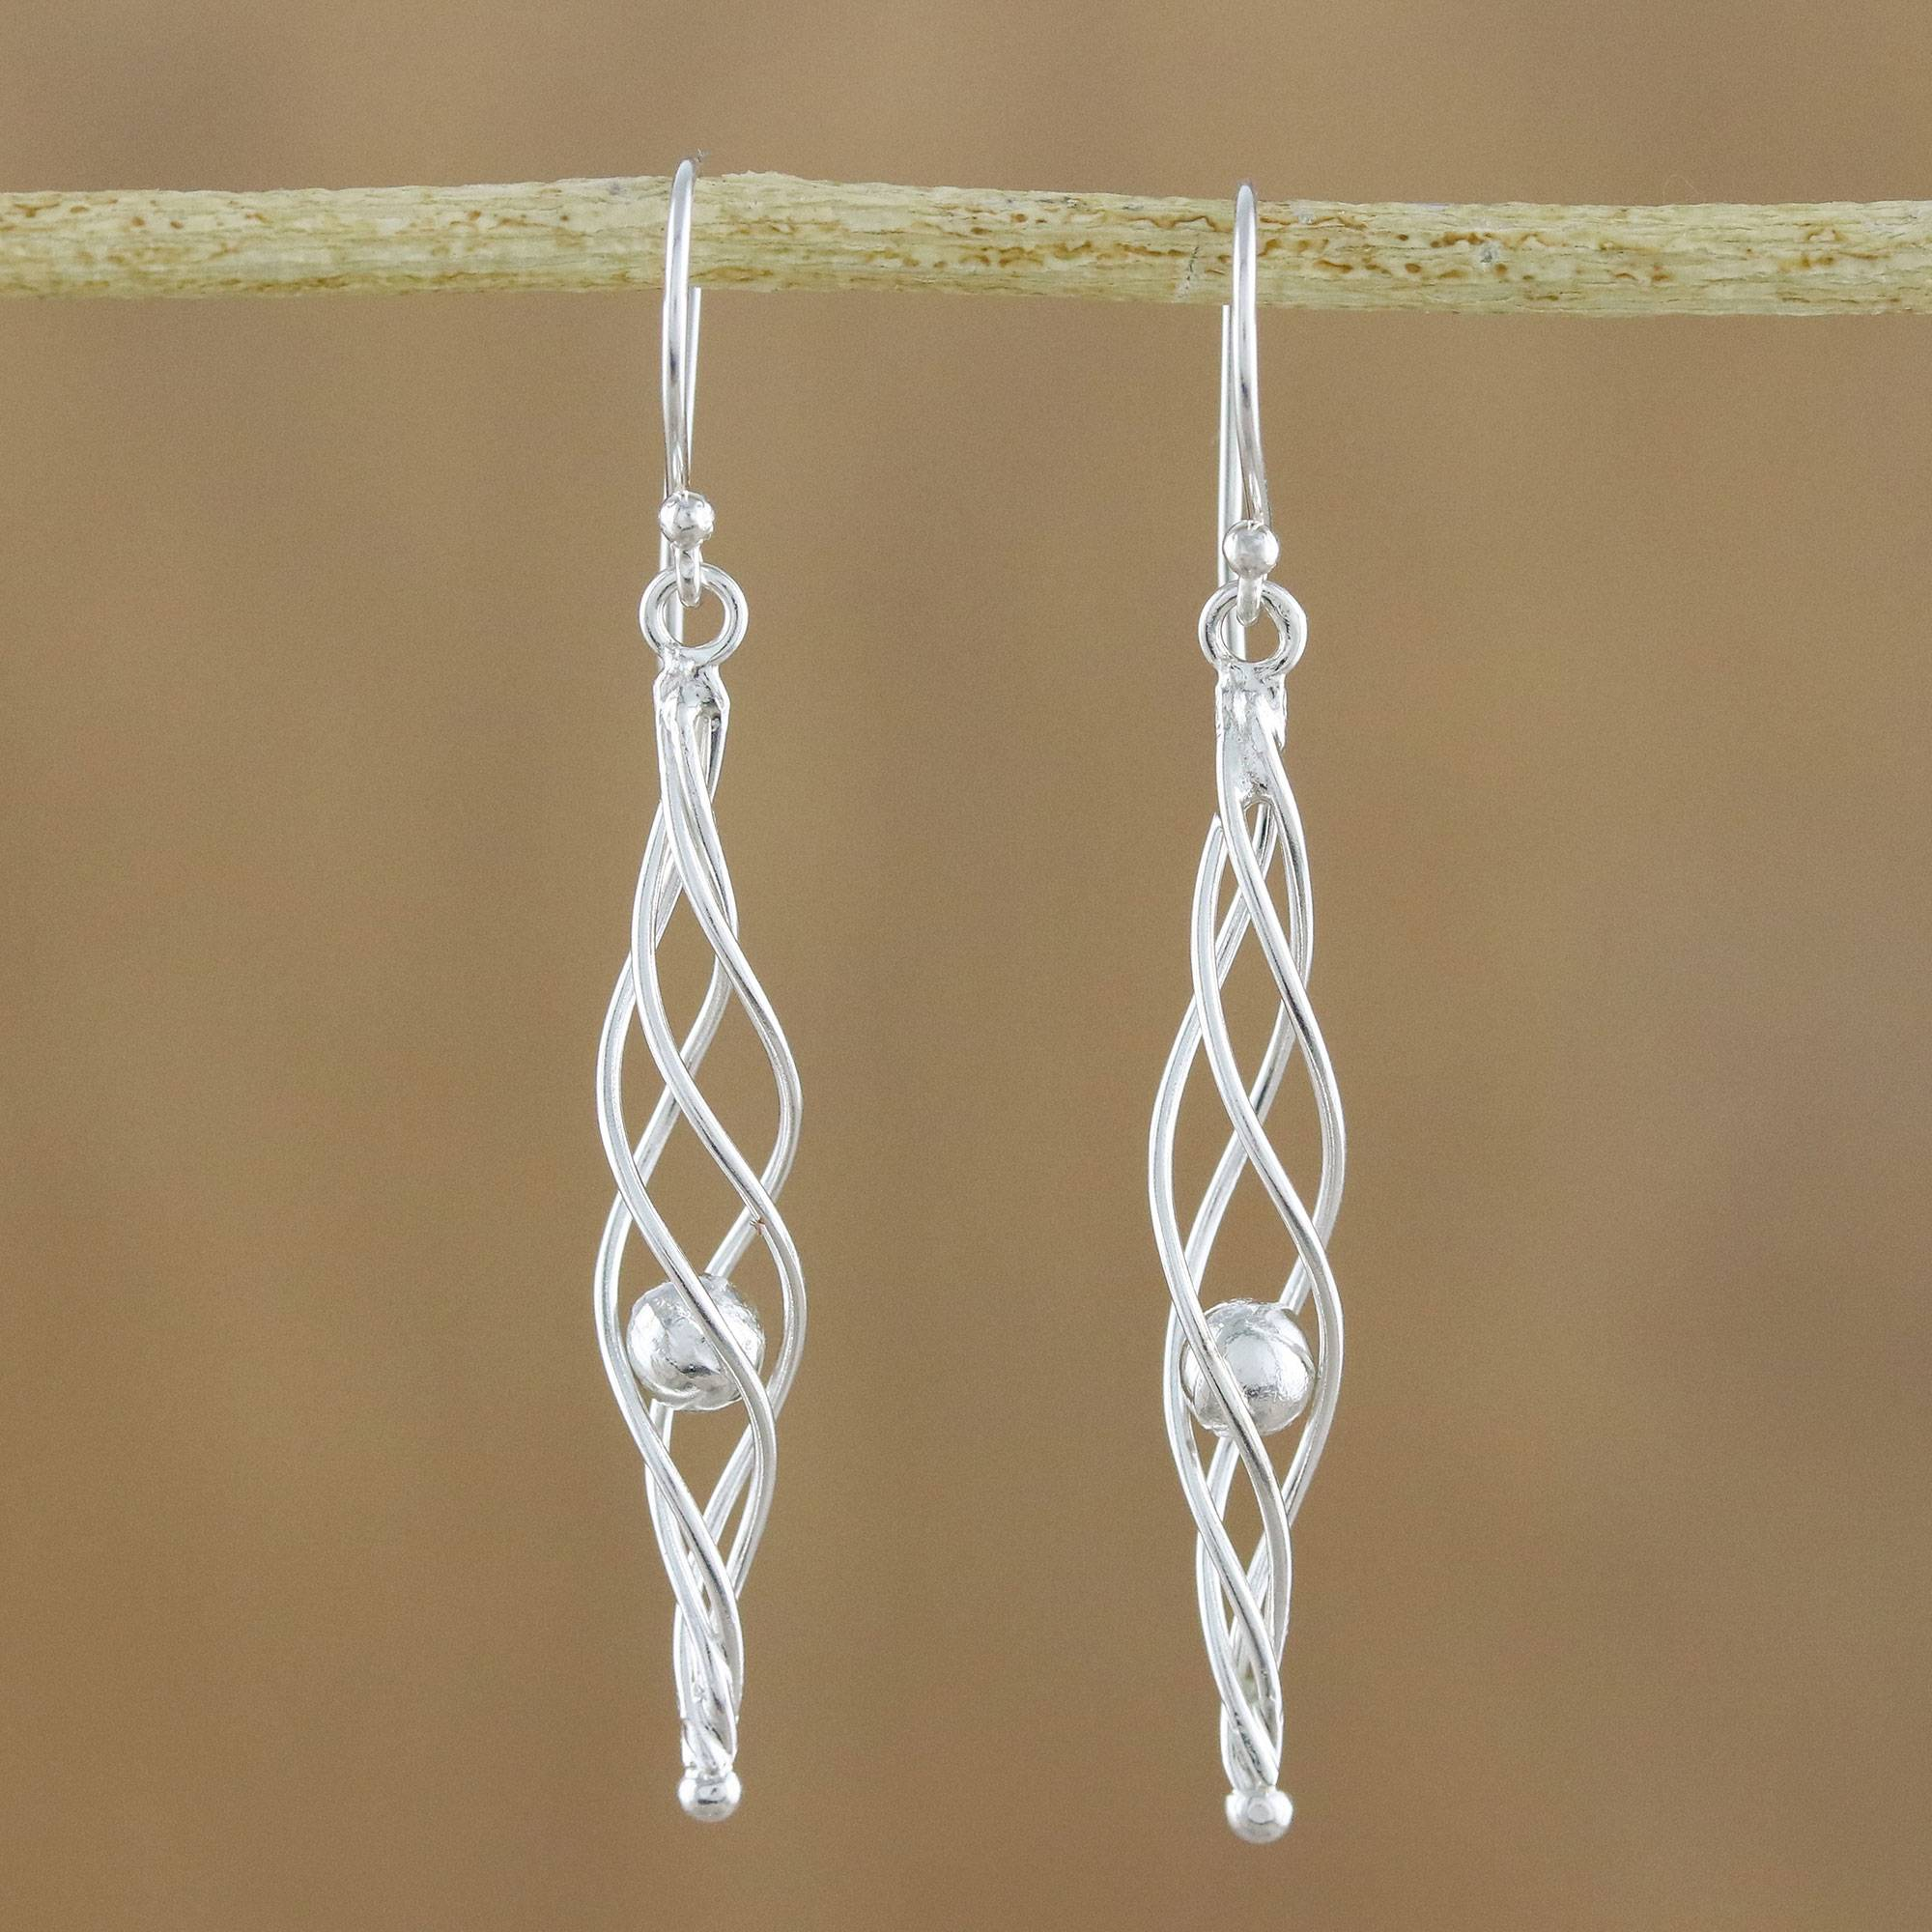 Free shipping Wood and leather dangle earrings on silver ear wires